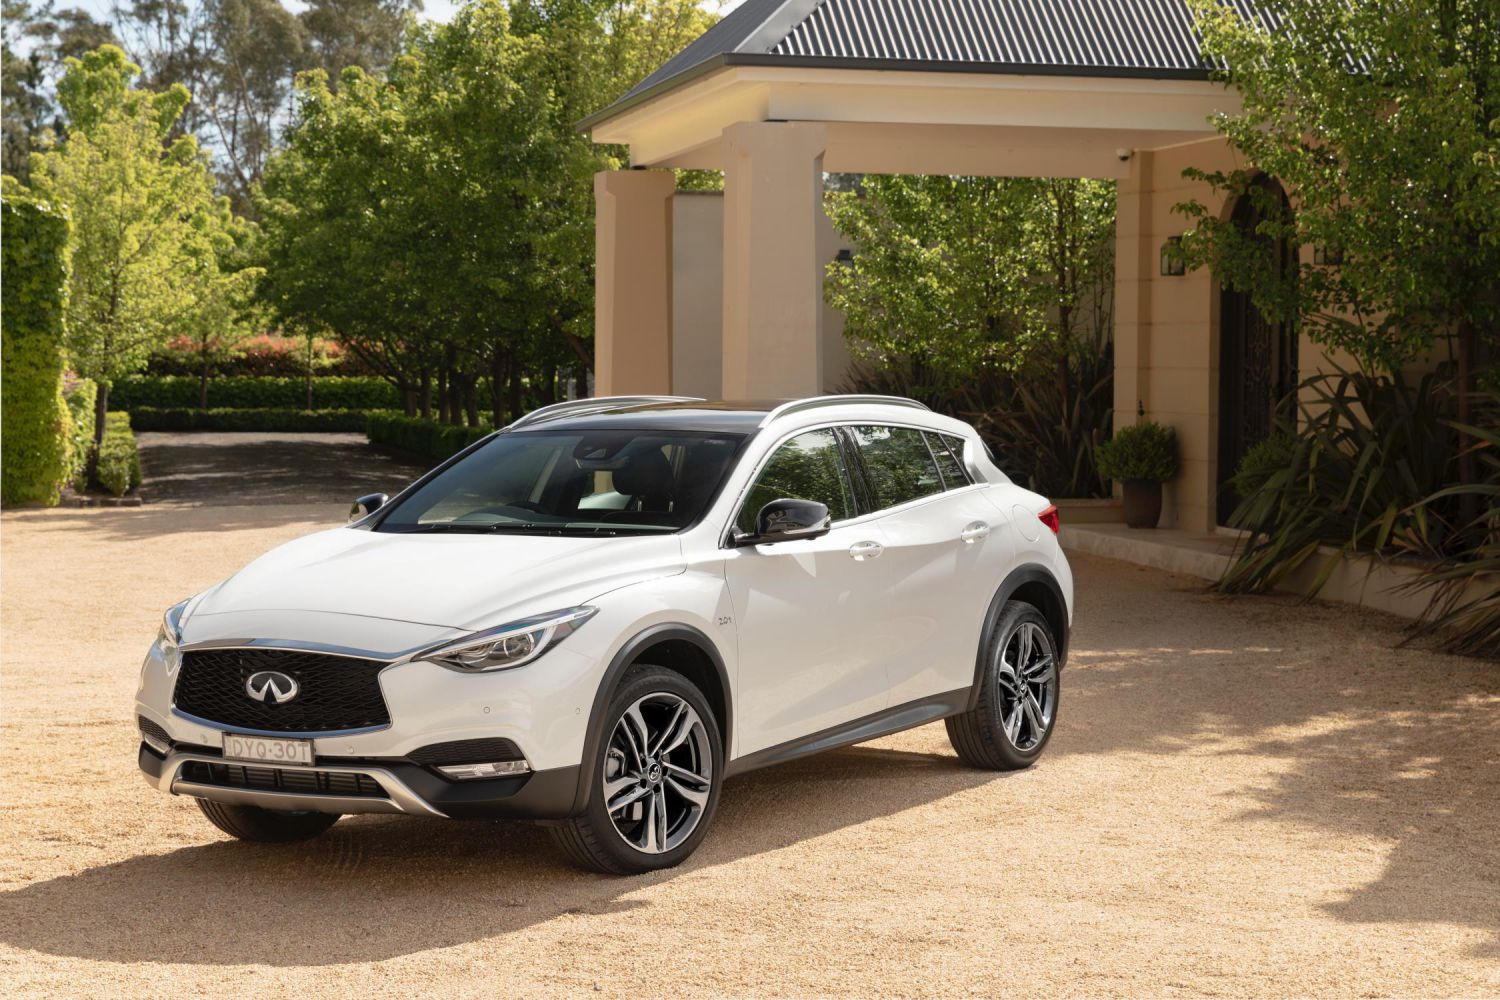 2019 Infiniti Q30 and QX30 specs and pricing